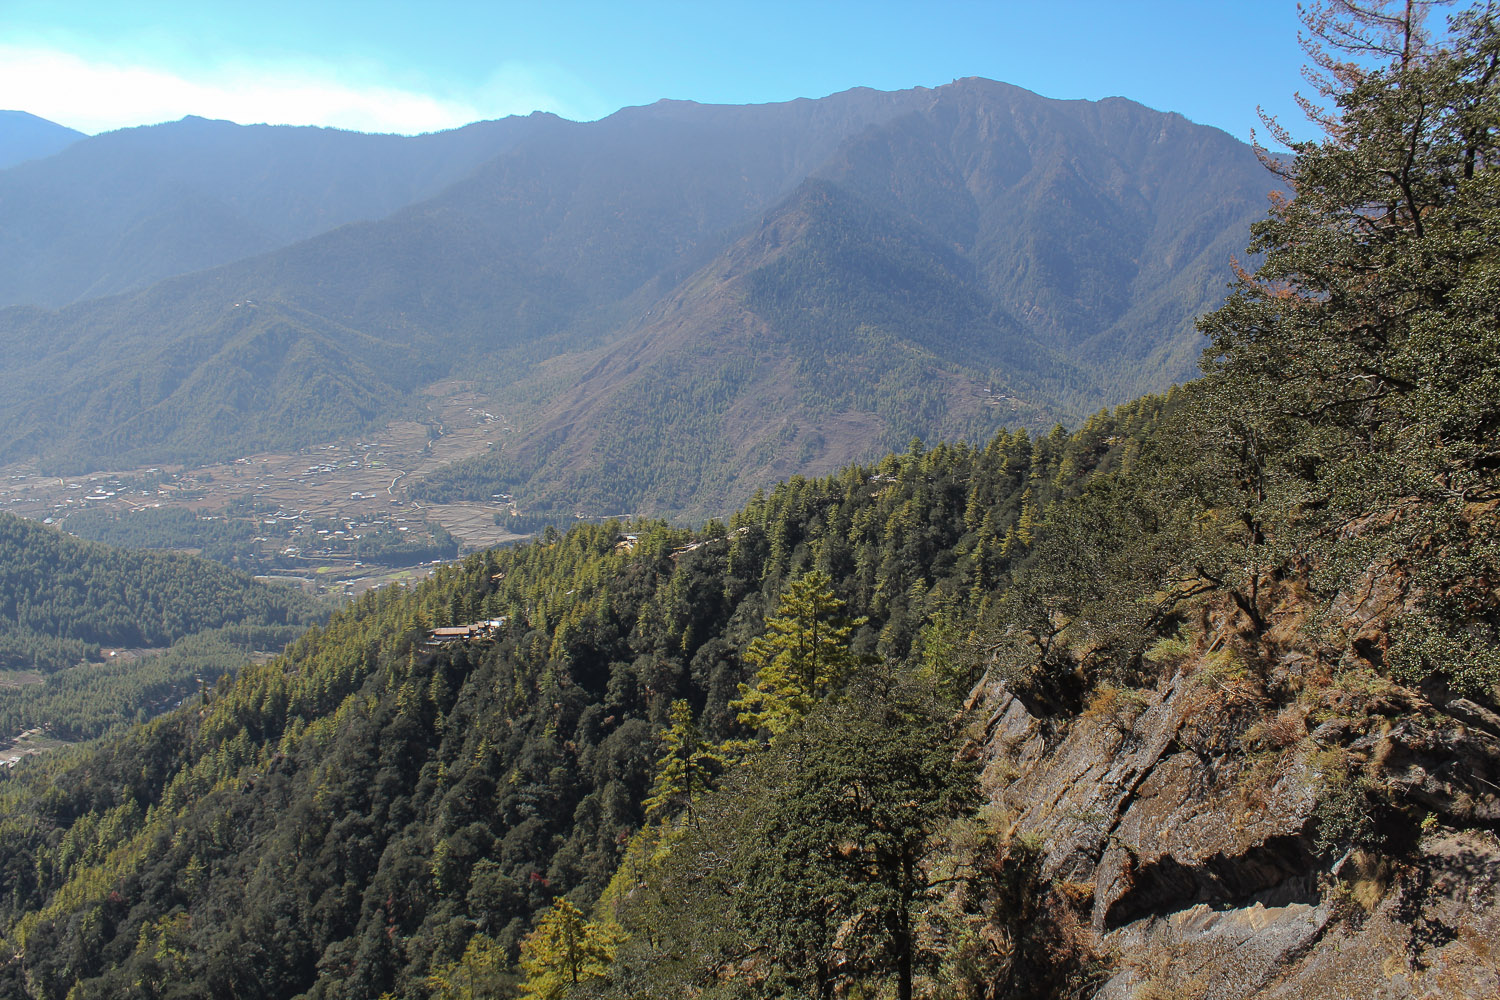 View of the Paro valley from the Tiger's Nest. Image: © Alan Williams